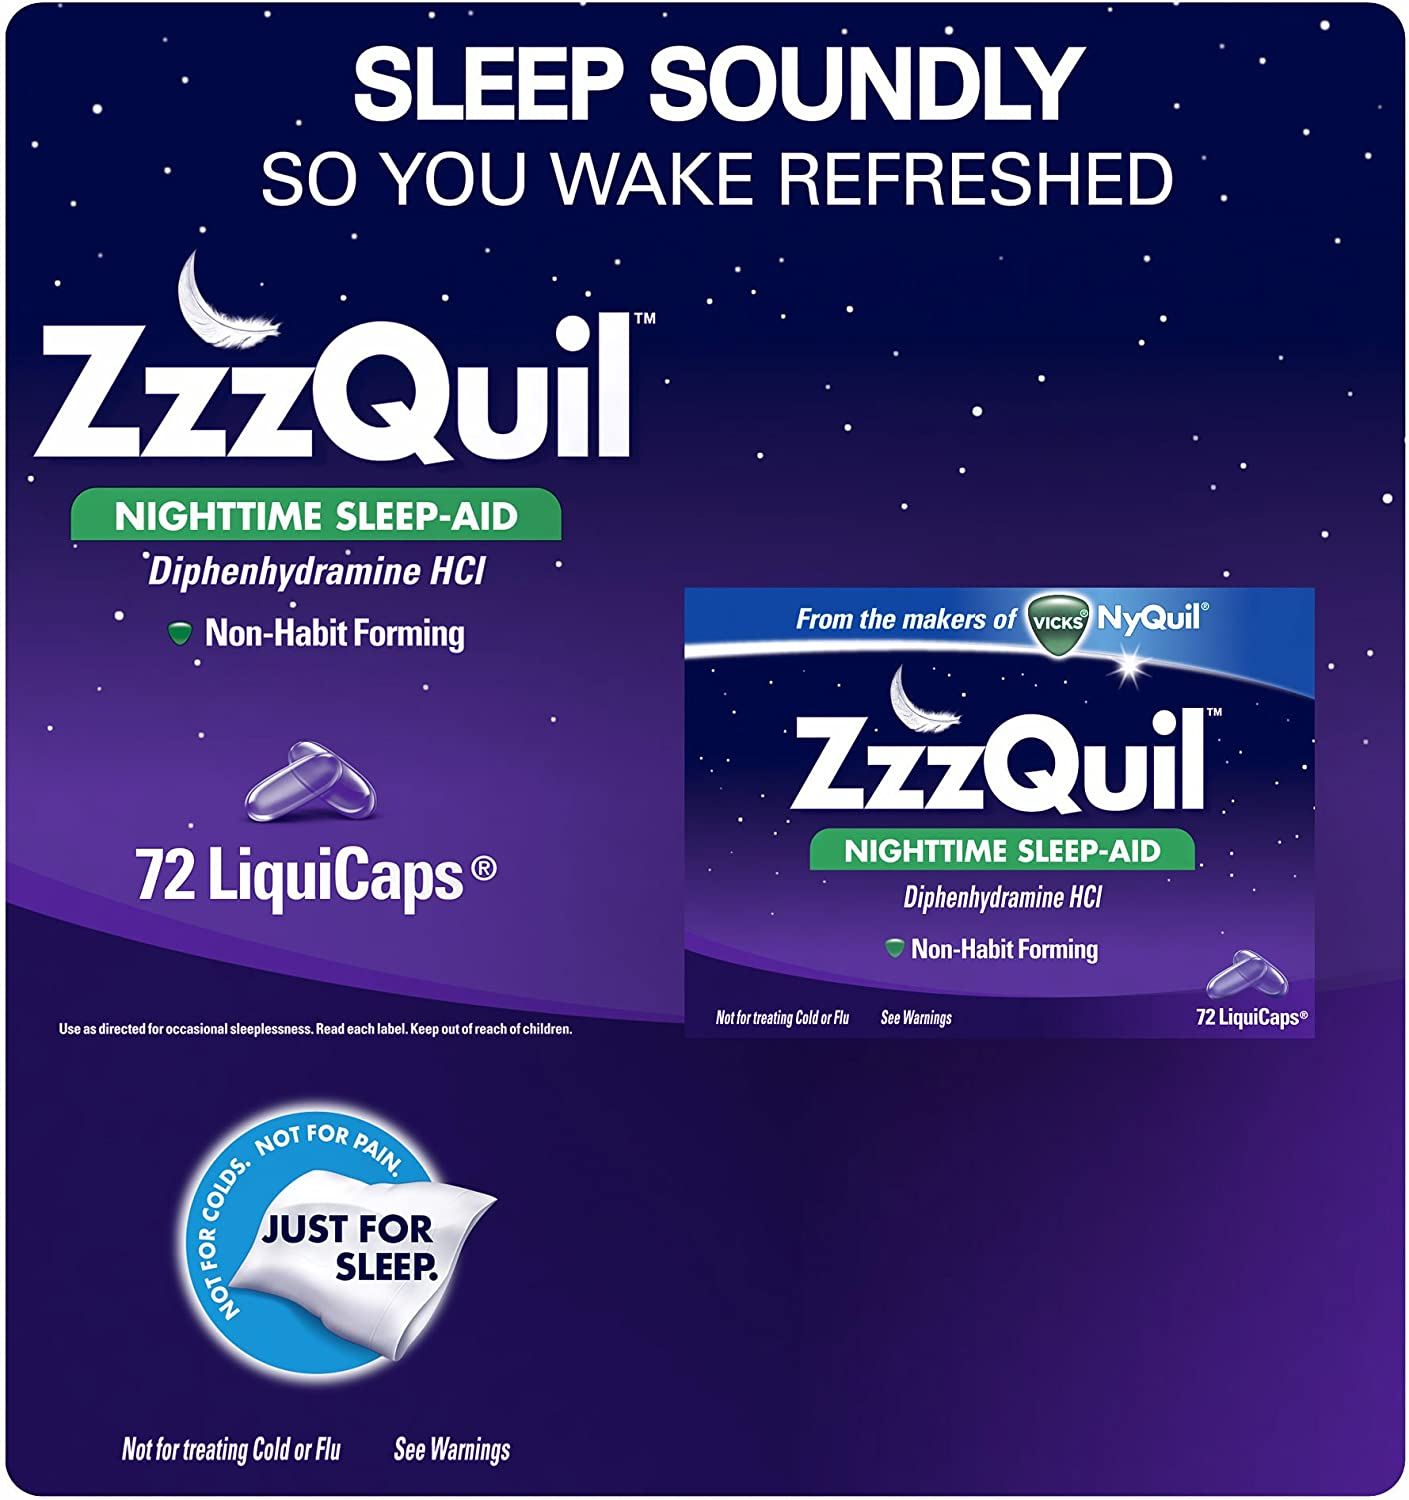 ZzzQuil Nighttime Sleep-Aid Super sale period limited LiquiCaps 72 ct. 2 of Pack Be super welcome